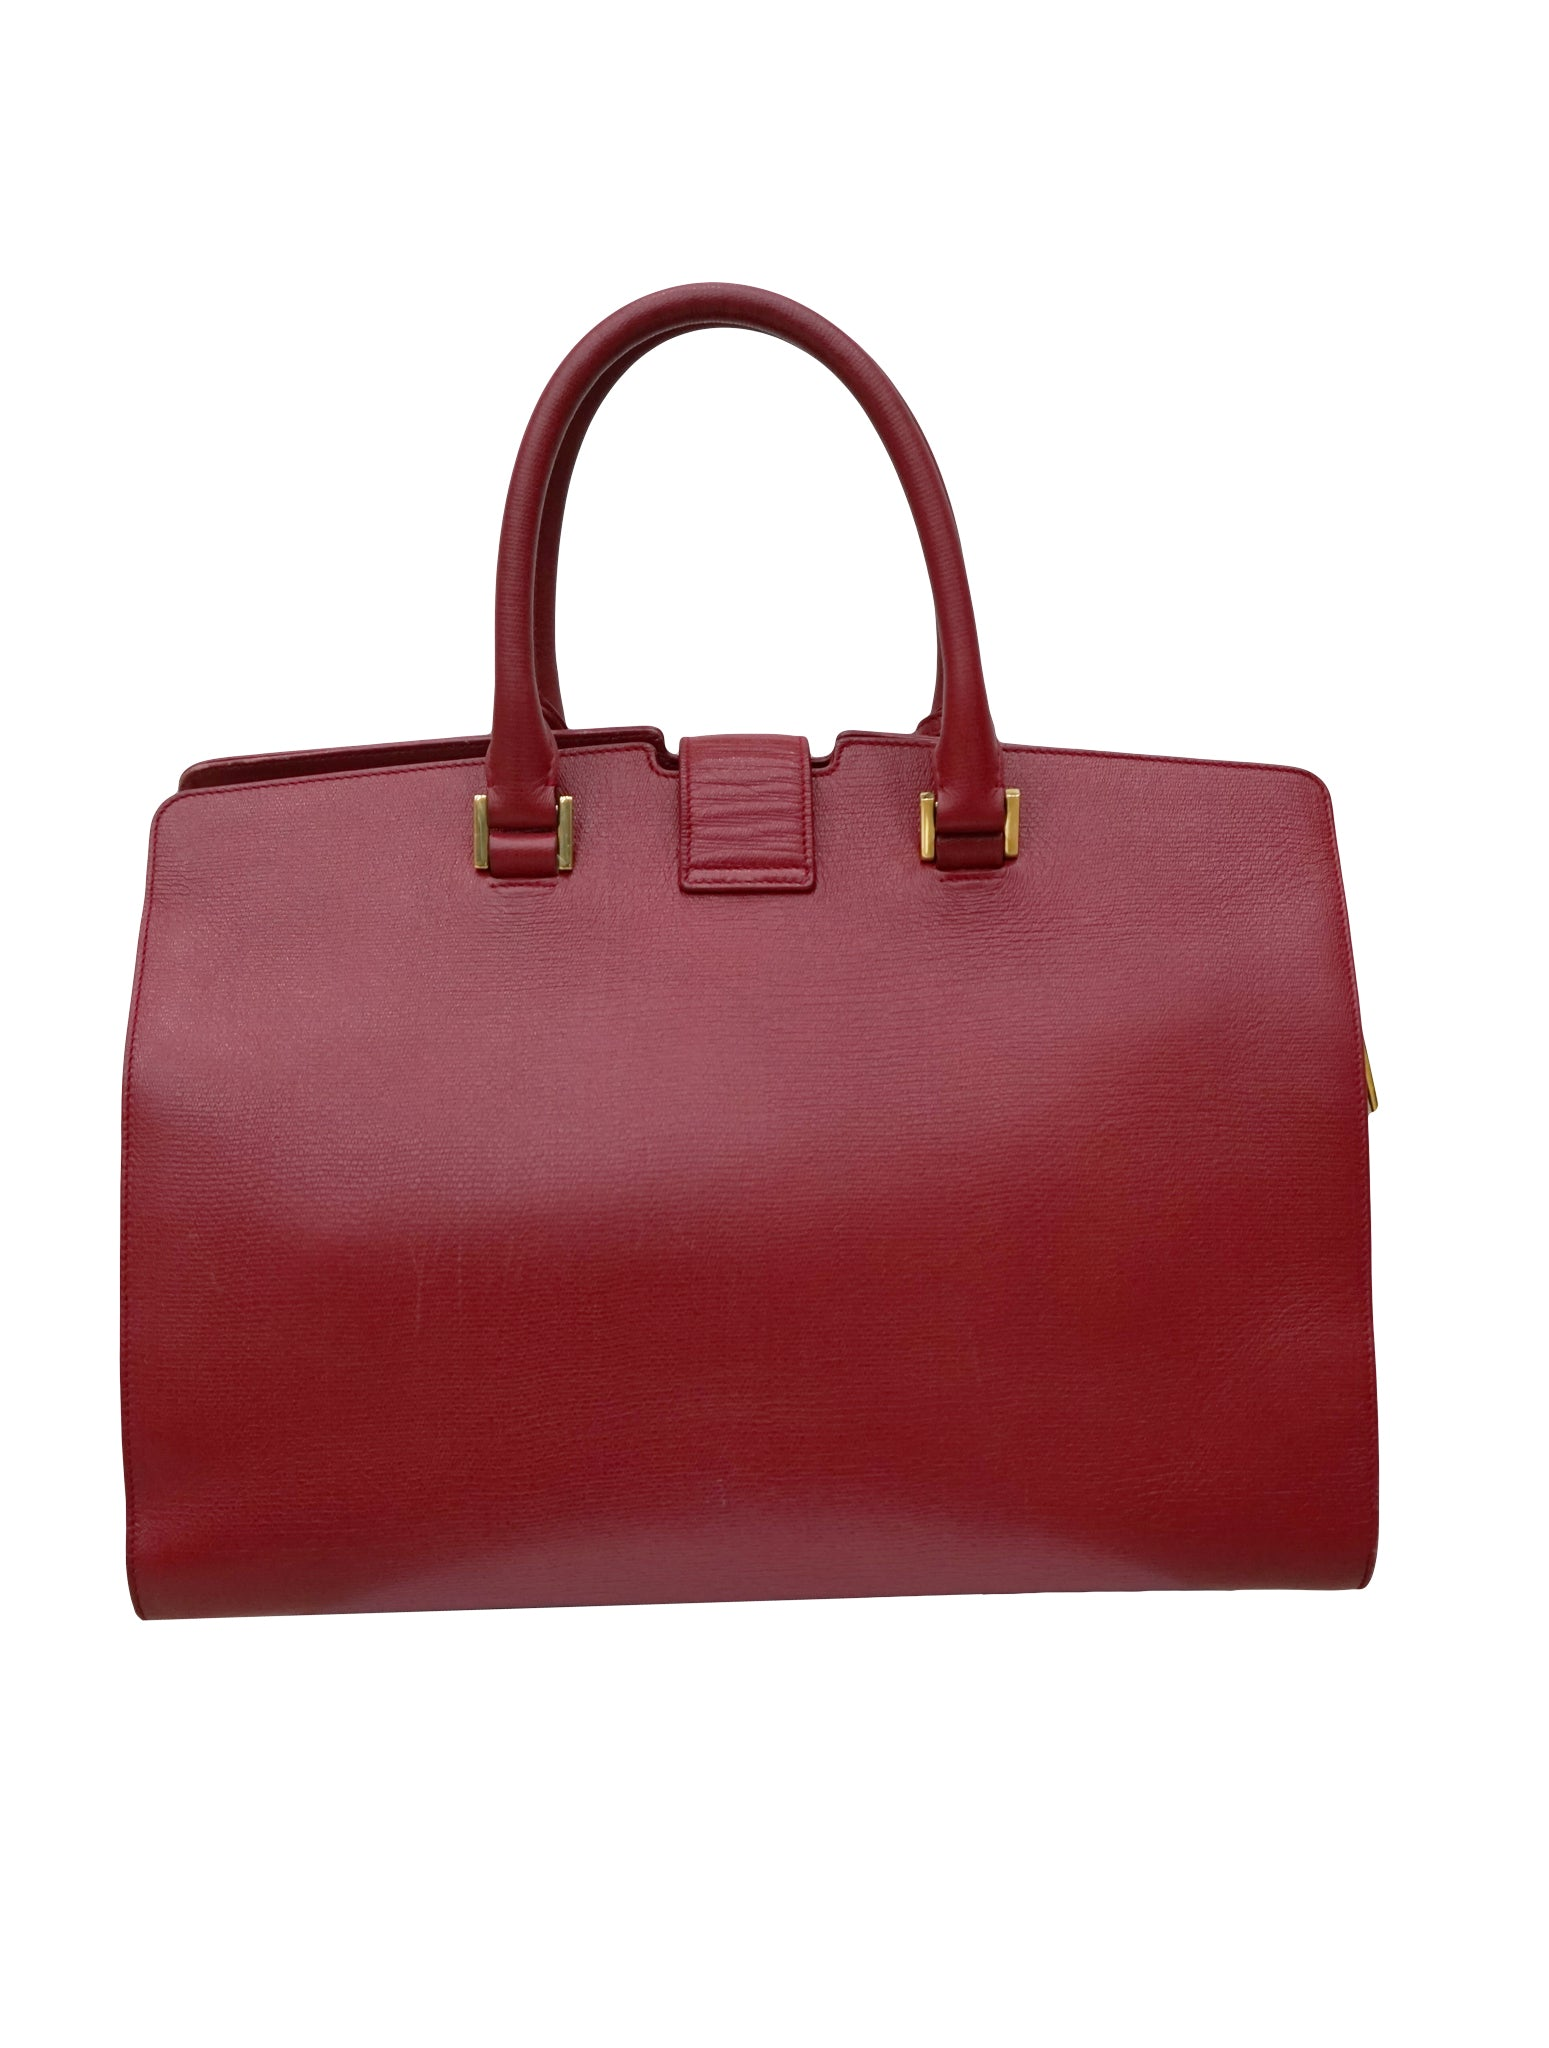 CLASSIC Y CABAS TEXTURED LEATHER BAG